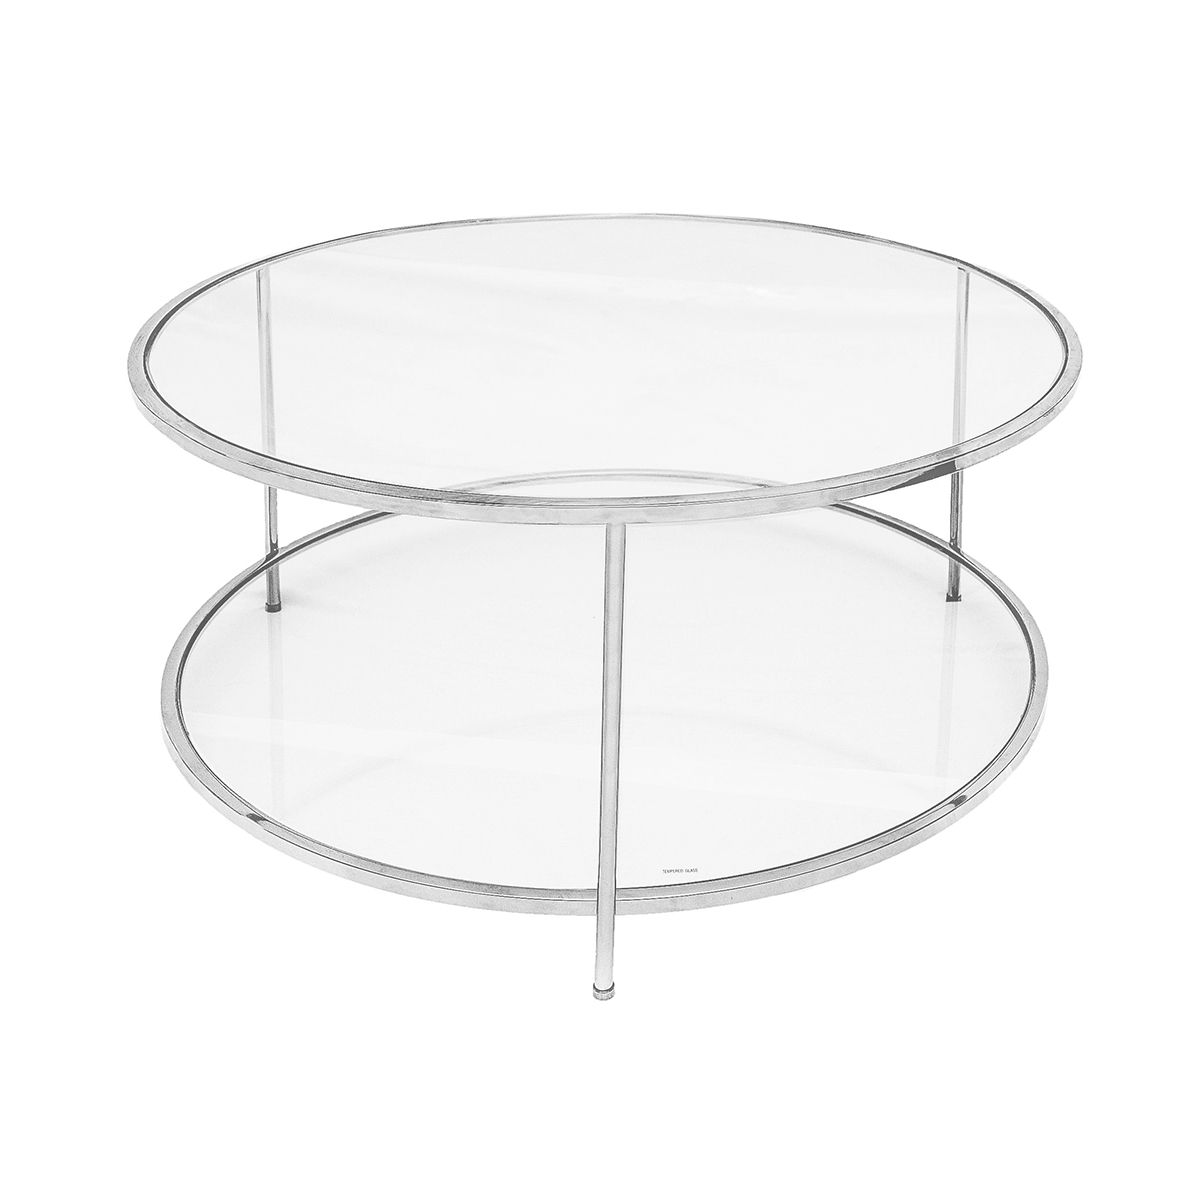 Sphere Coffee Table – Chrome